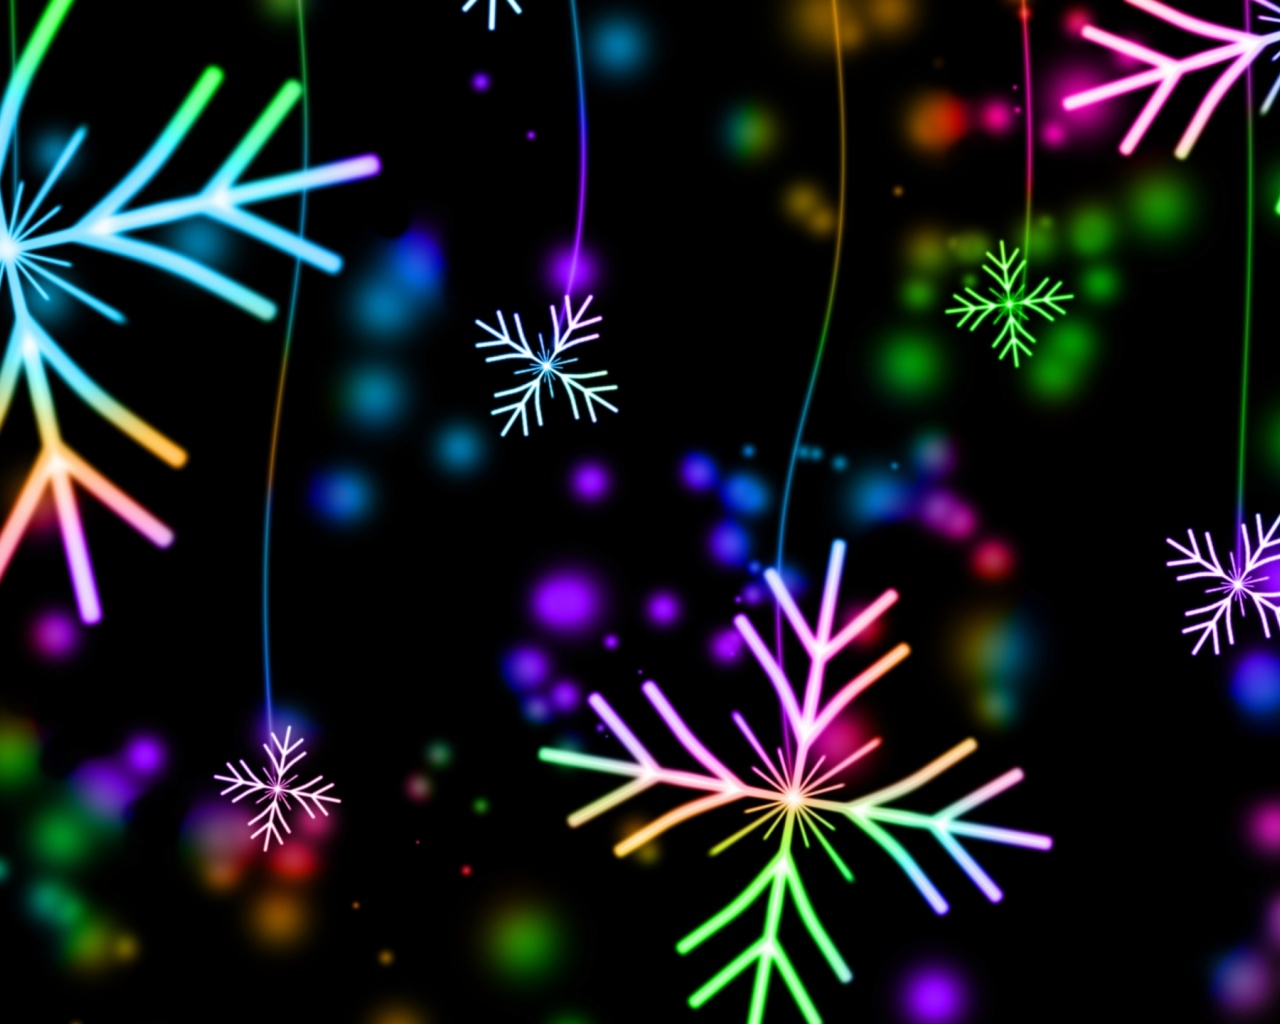 1280x1024 snowflakes, colorful, glare